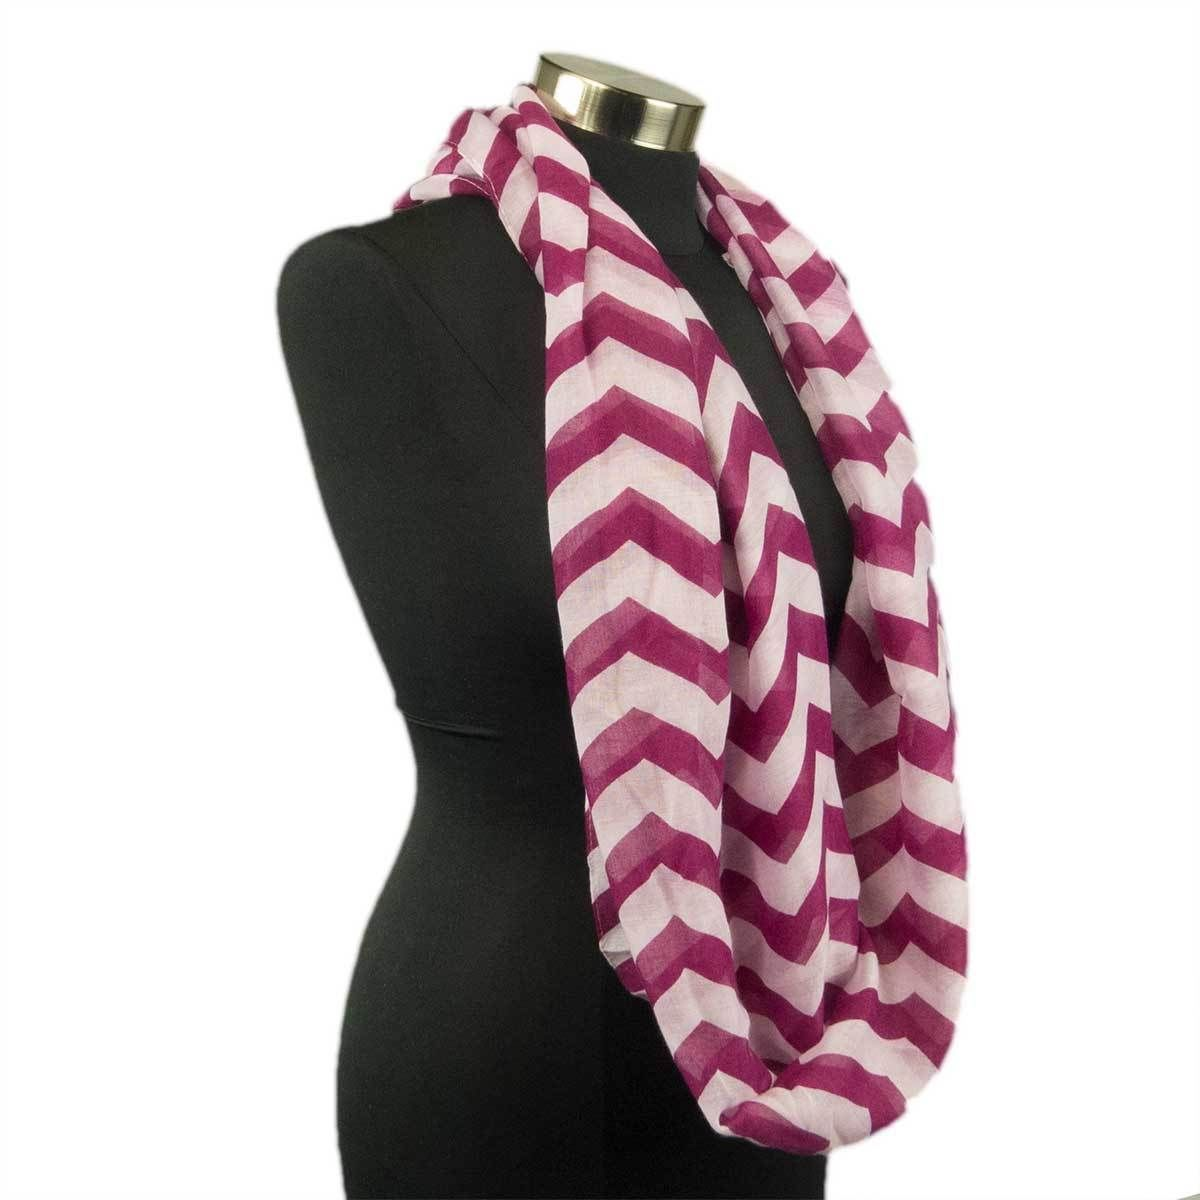 Primary image for Chevron Sheer Infinity Scarf Soft Multi Color Scarves Wine Wrap Lightweight New